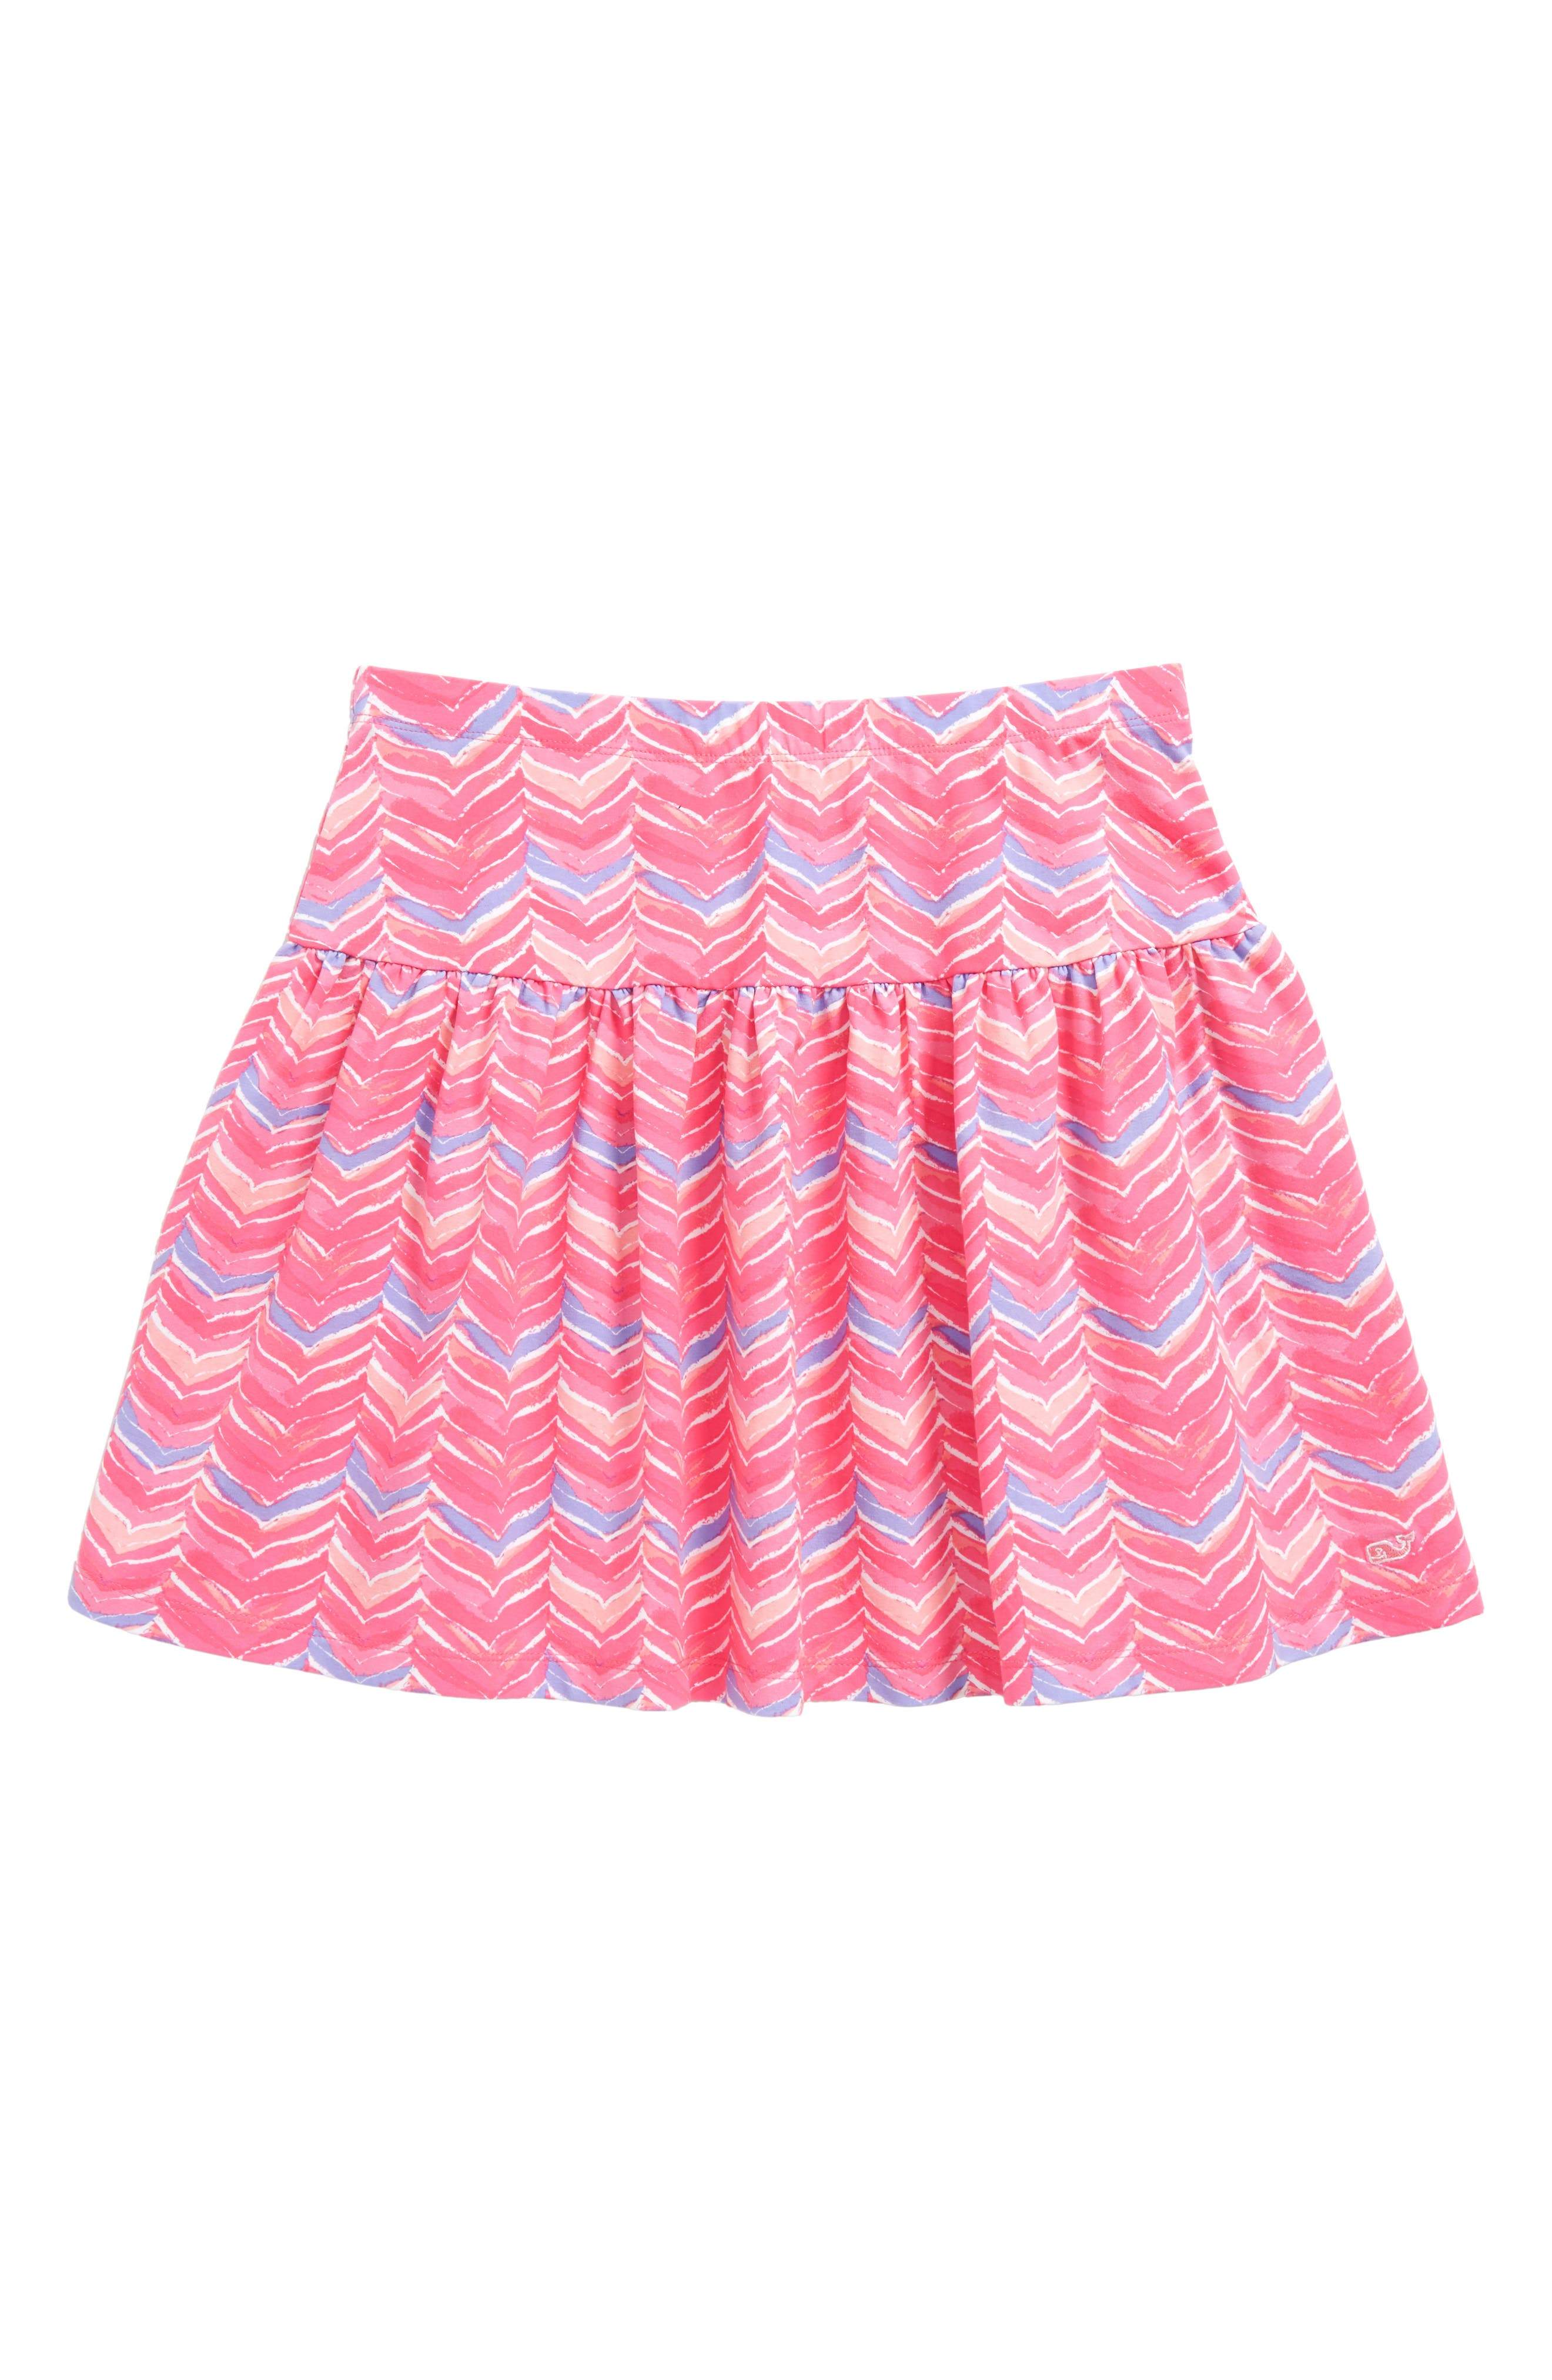 Watercolor Whale Tail Print Skirt,                             Main thumbnail 1, color,                             650